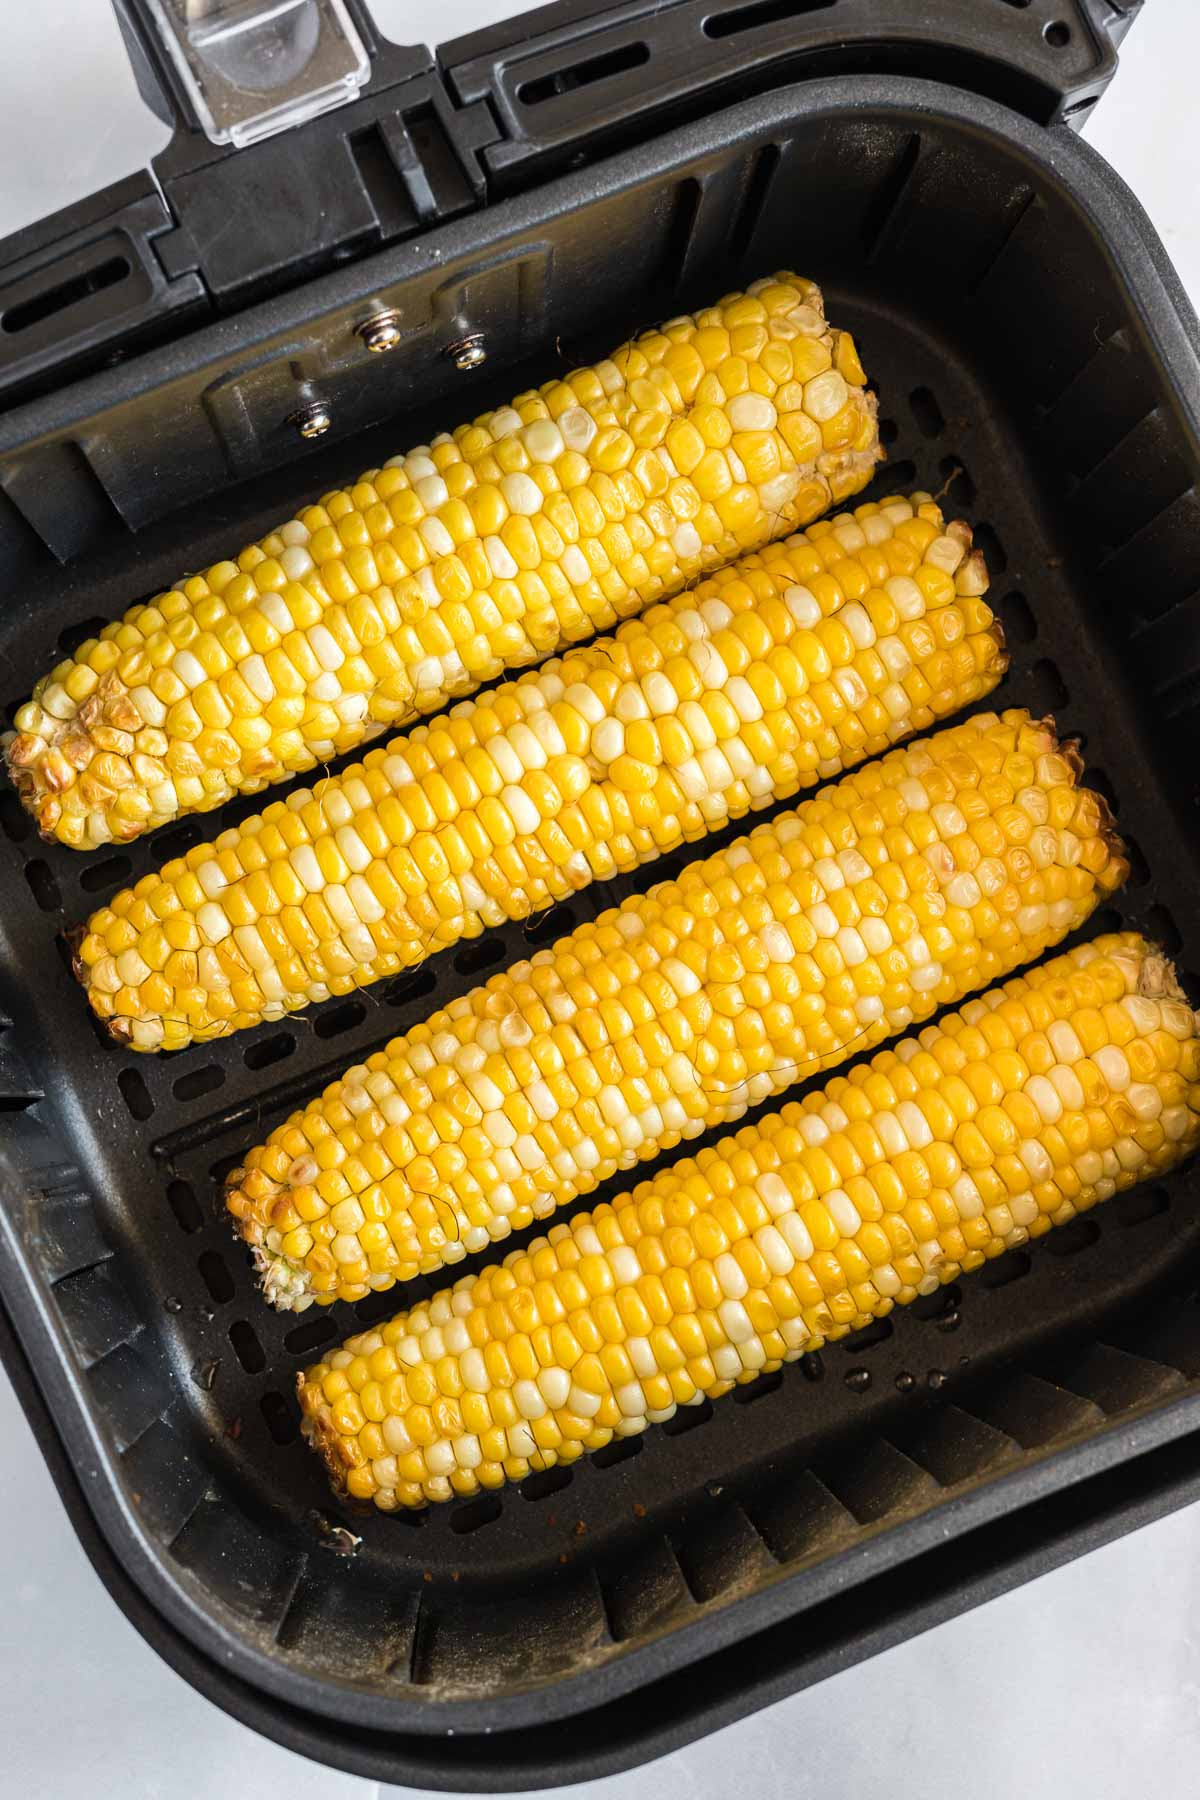 Four cooked corn on the cobs in an air fryer basket.